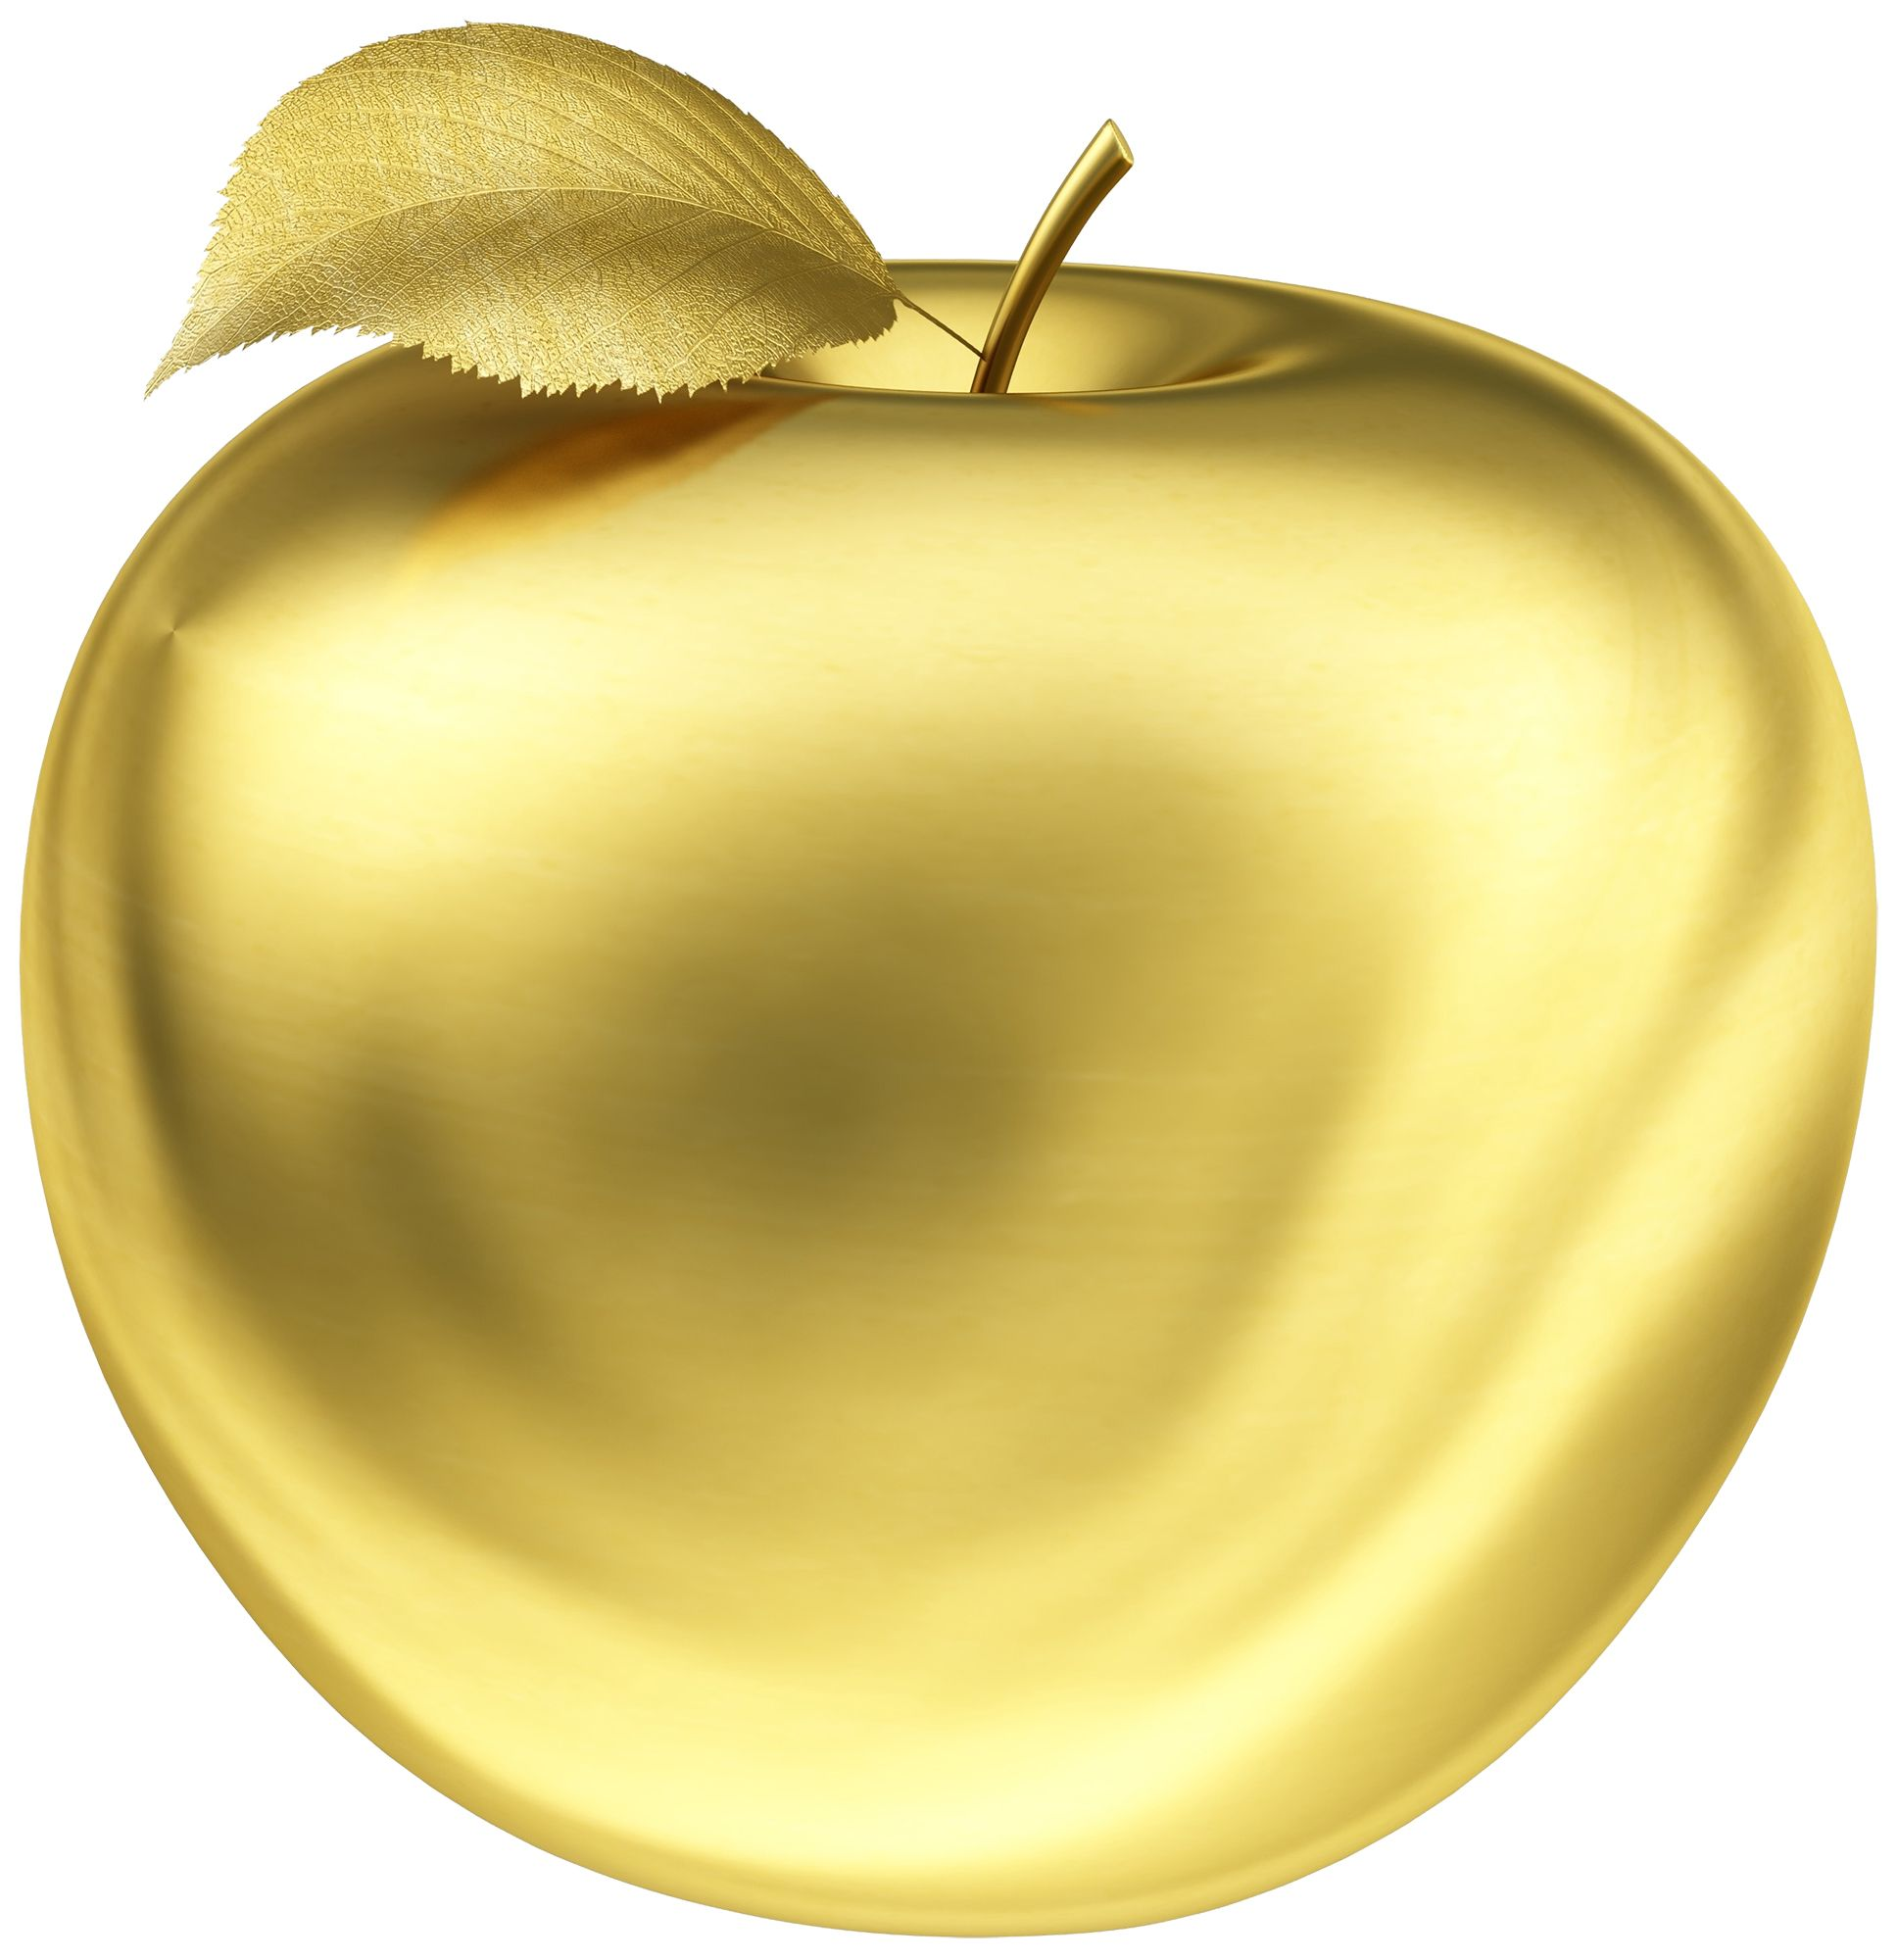 golden apples Yahoo Image Search Results Gold apple